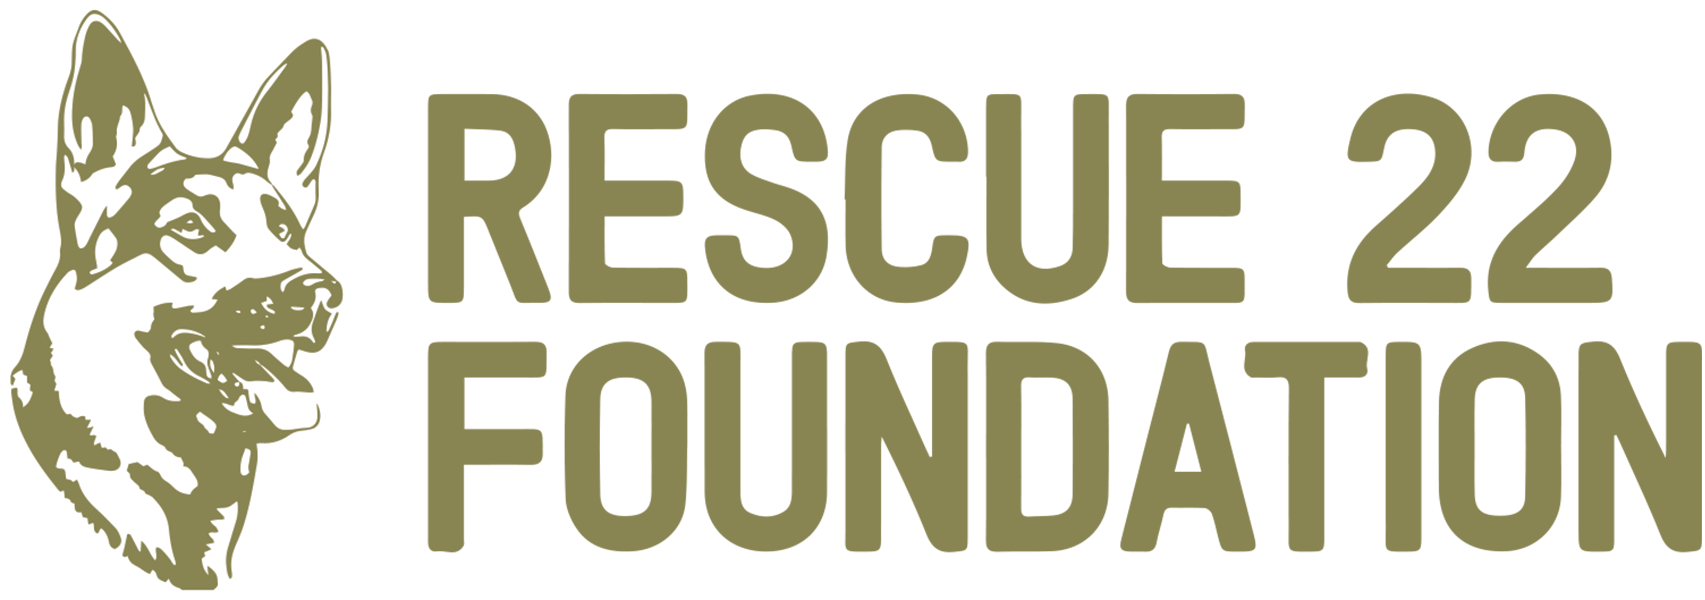 TruVet Organization of the Month - Rescue 22 Foundation